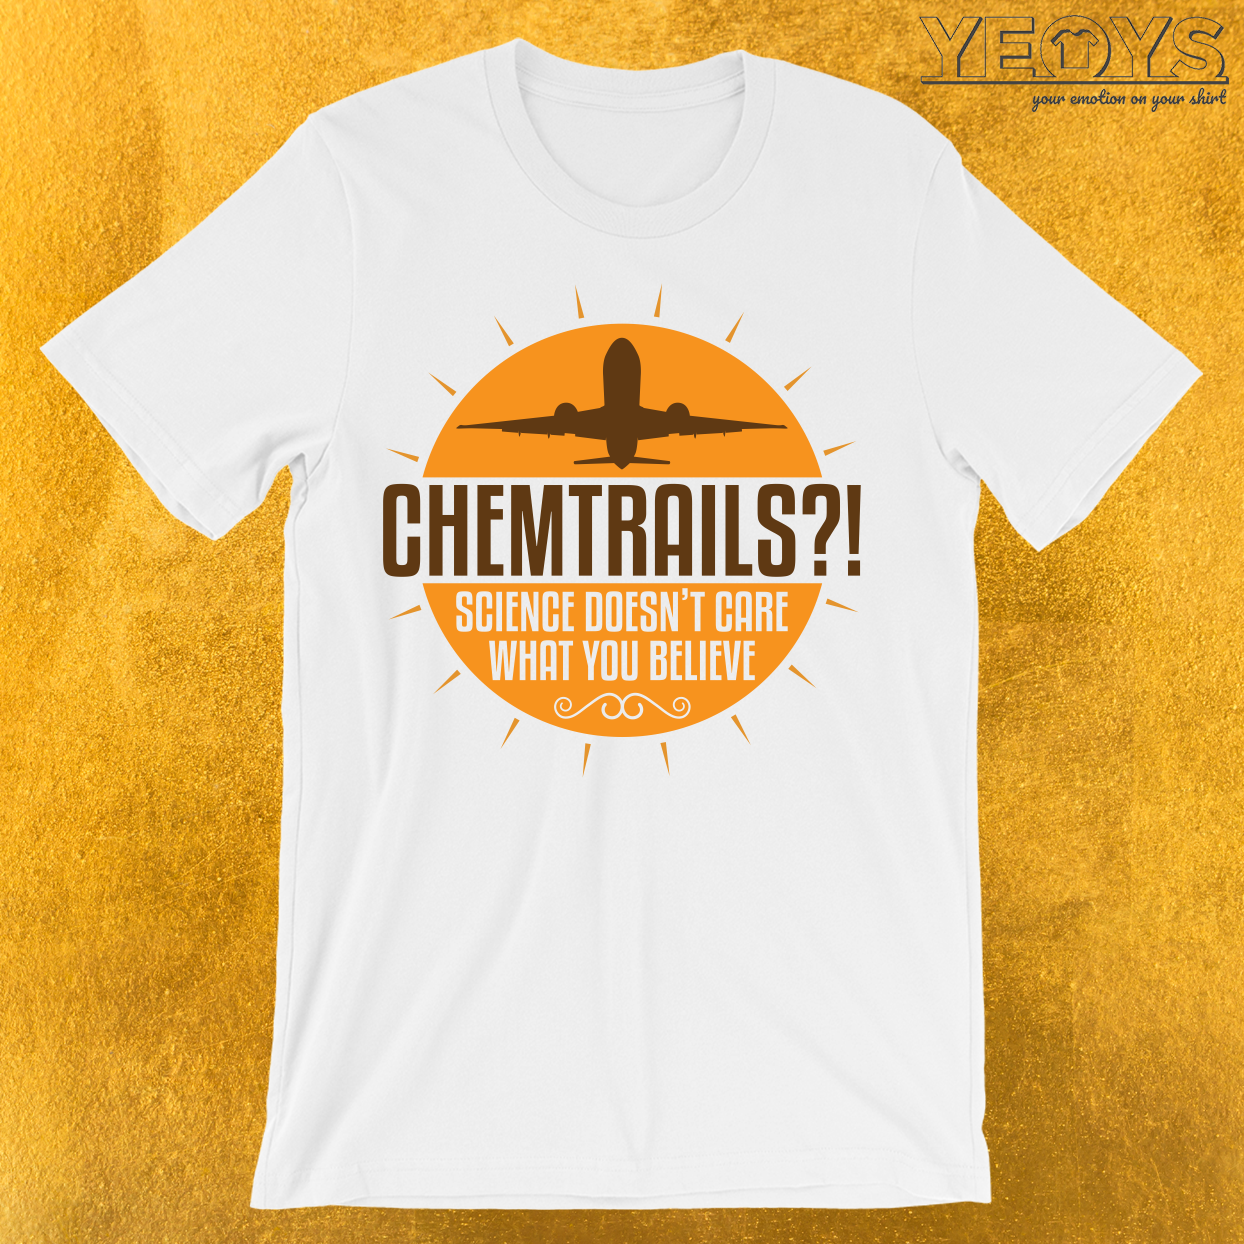 Chemtrails Science Doesn't Care What You Believe T-Shirt